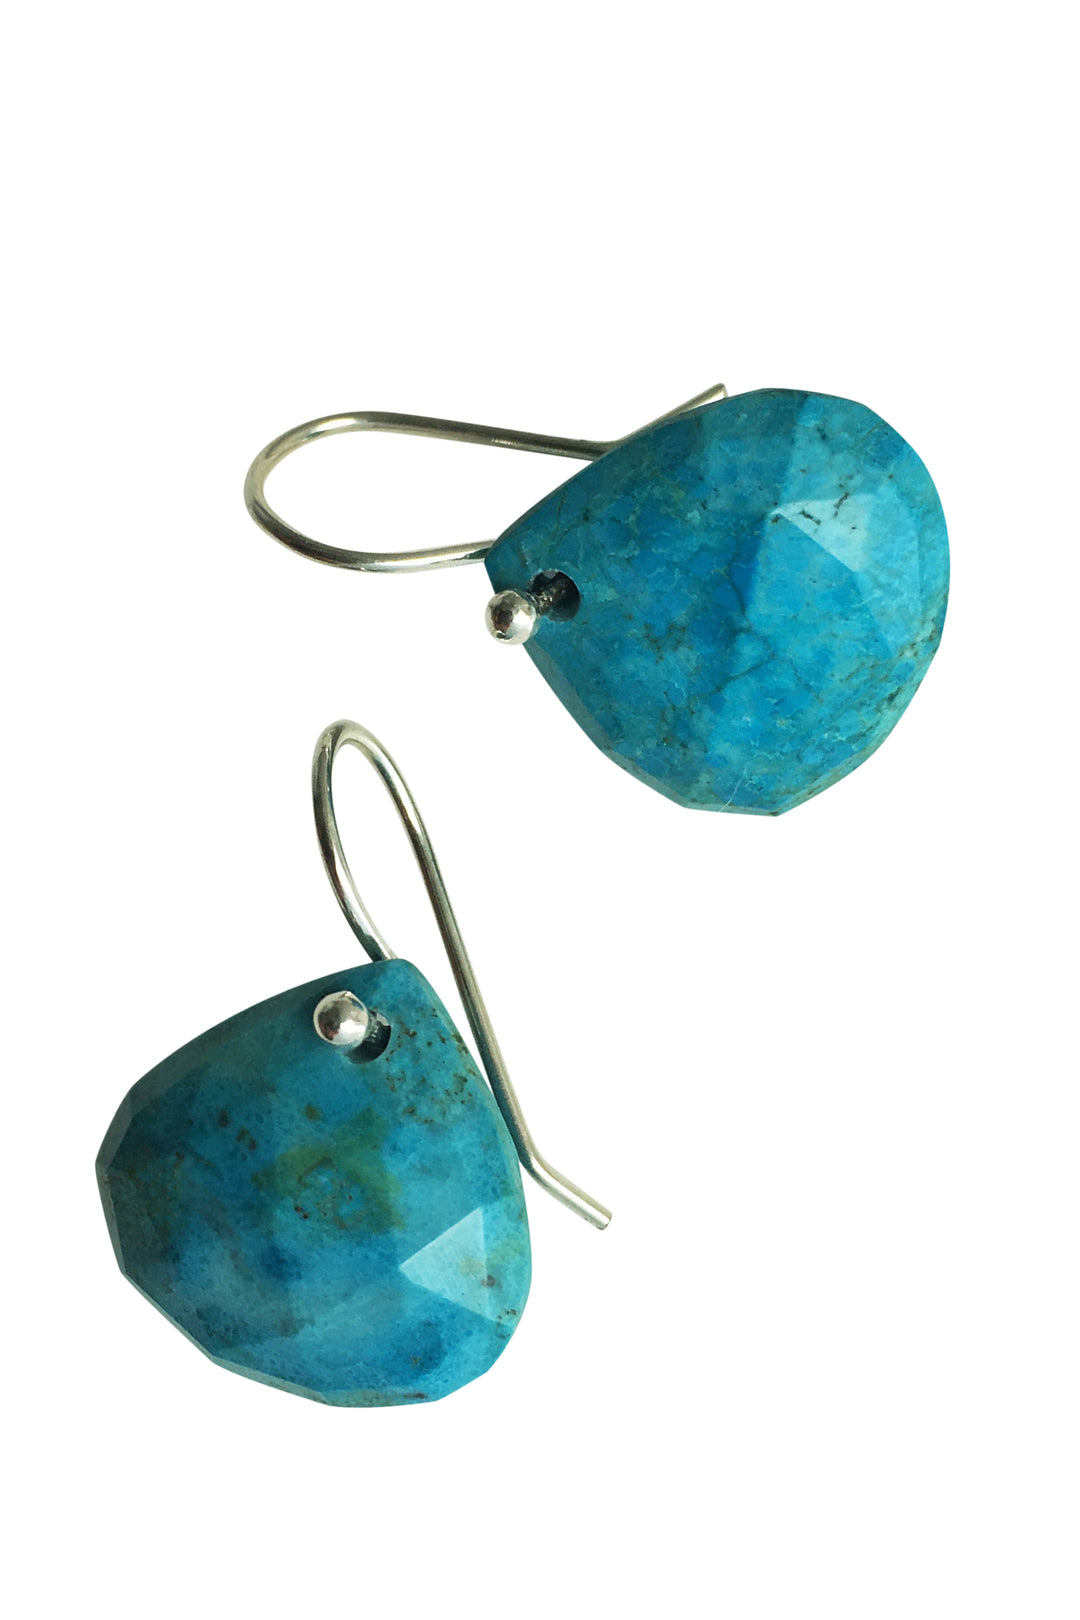 Turquoise teardrop earrings silver hook